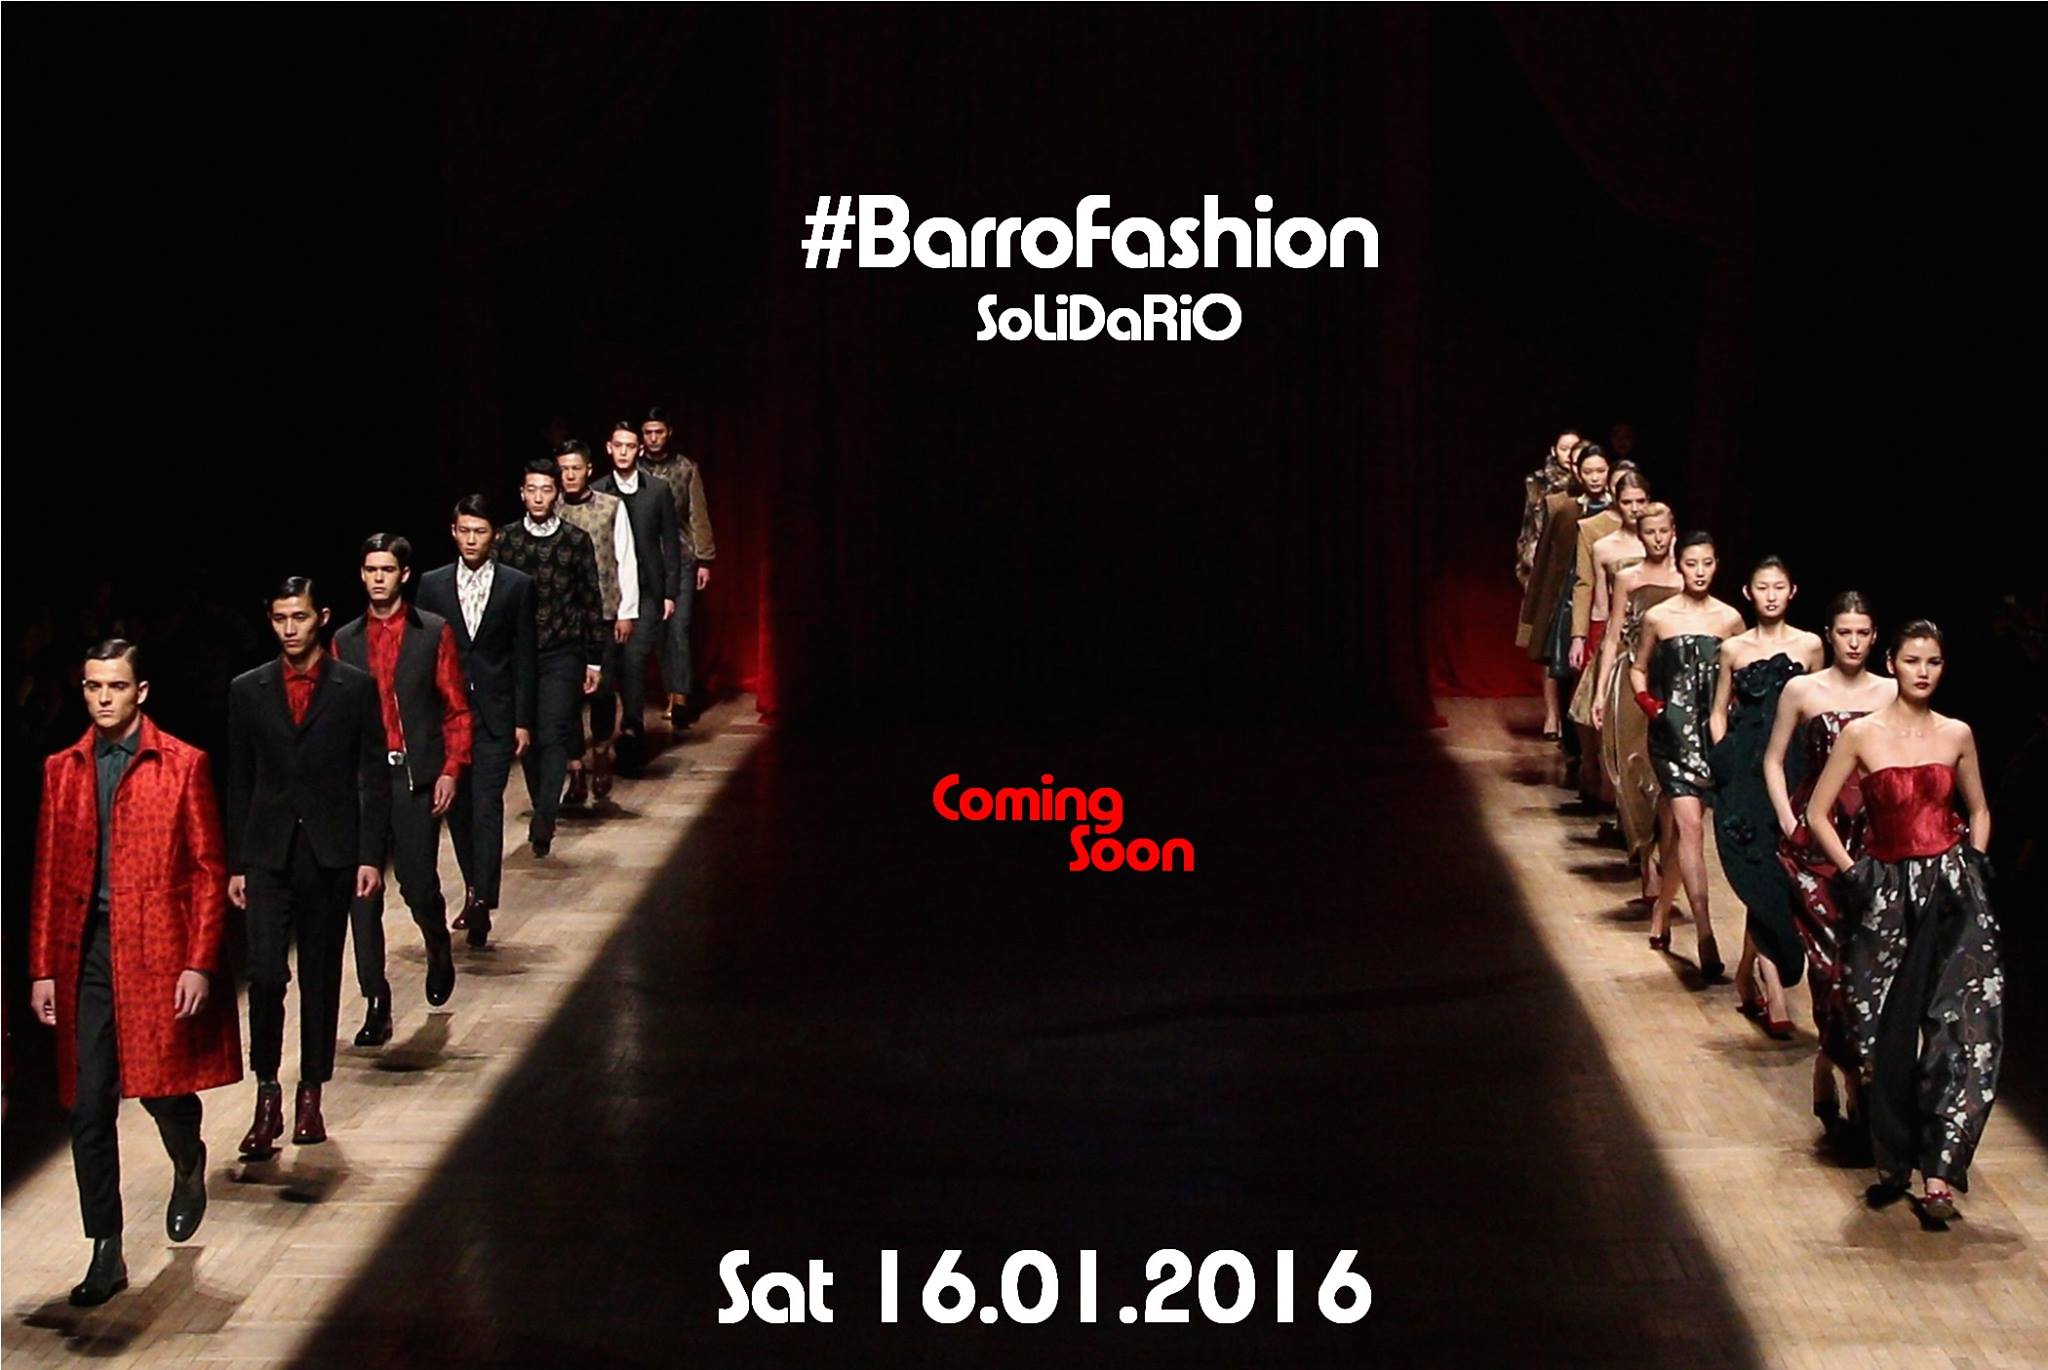 Barro Fashion Solidario. Desfile entrañable y especial